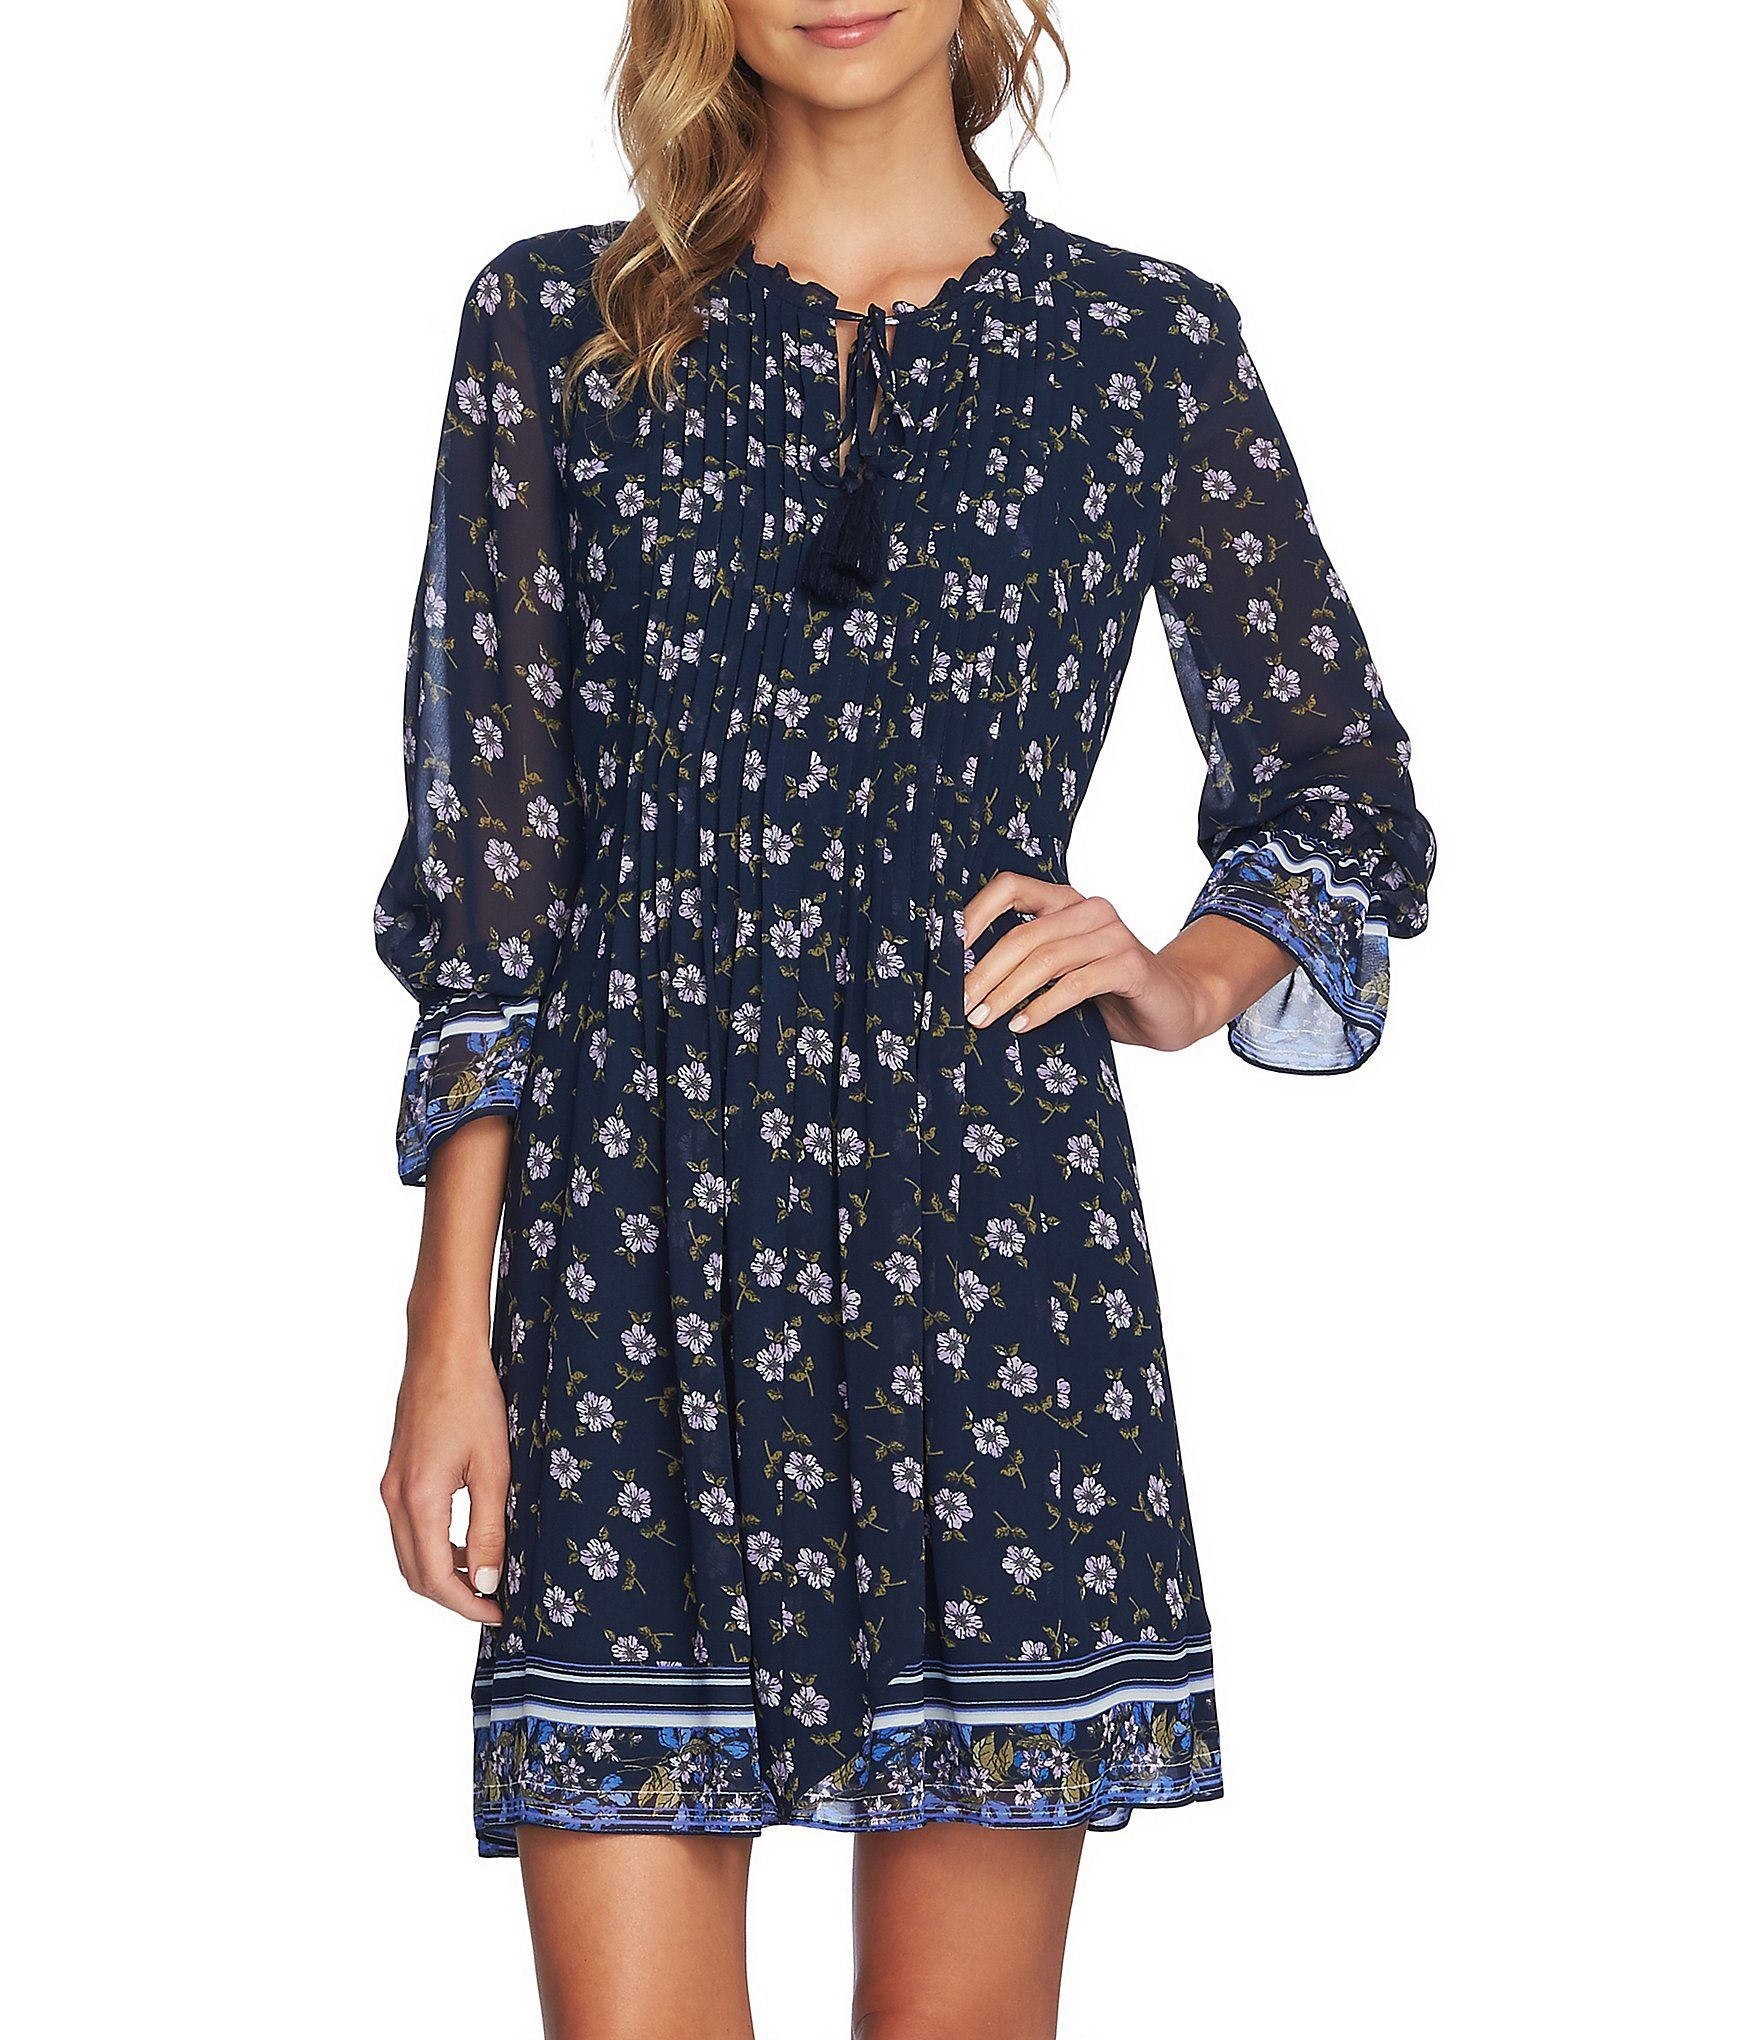 43abebf29bb Shop for CeCe Romantic Ditsy Floral Print Trellis Poet Sleeve A-Line Dress  at Dillards.com. Visit Dillards.com to find clothing